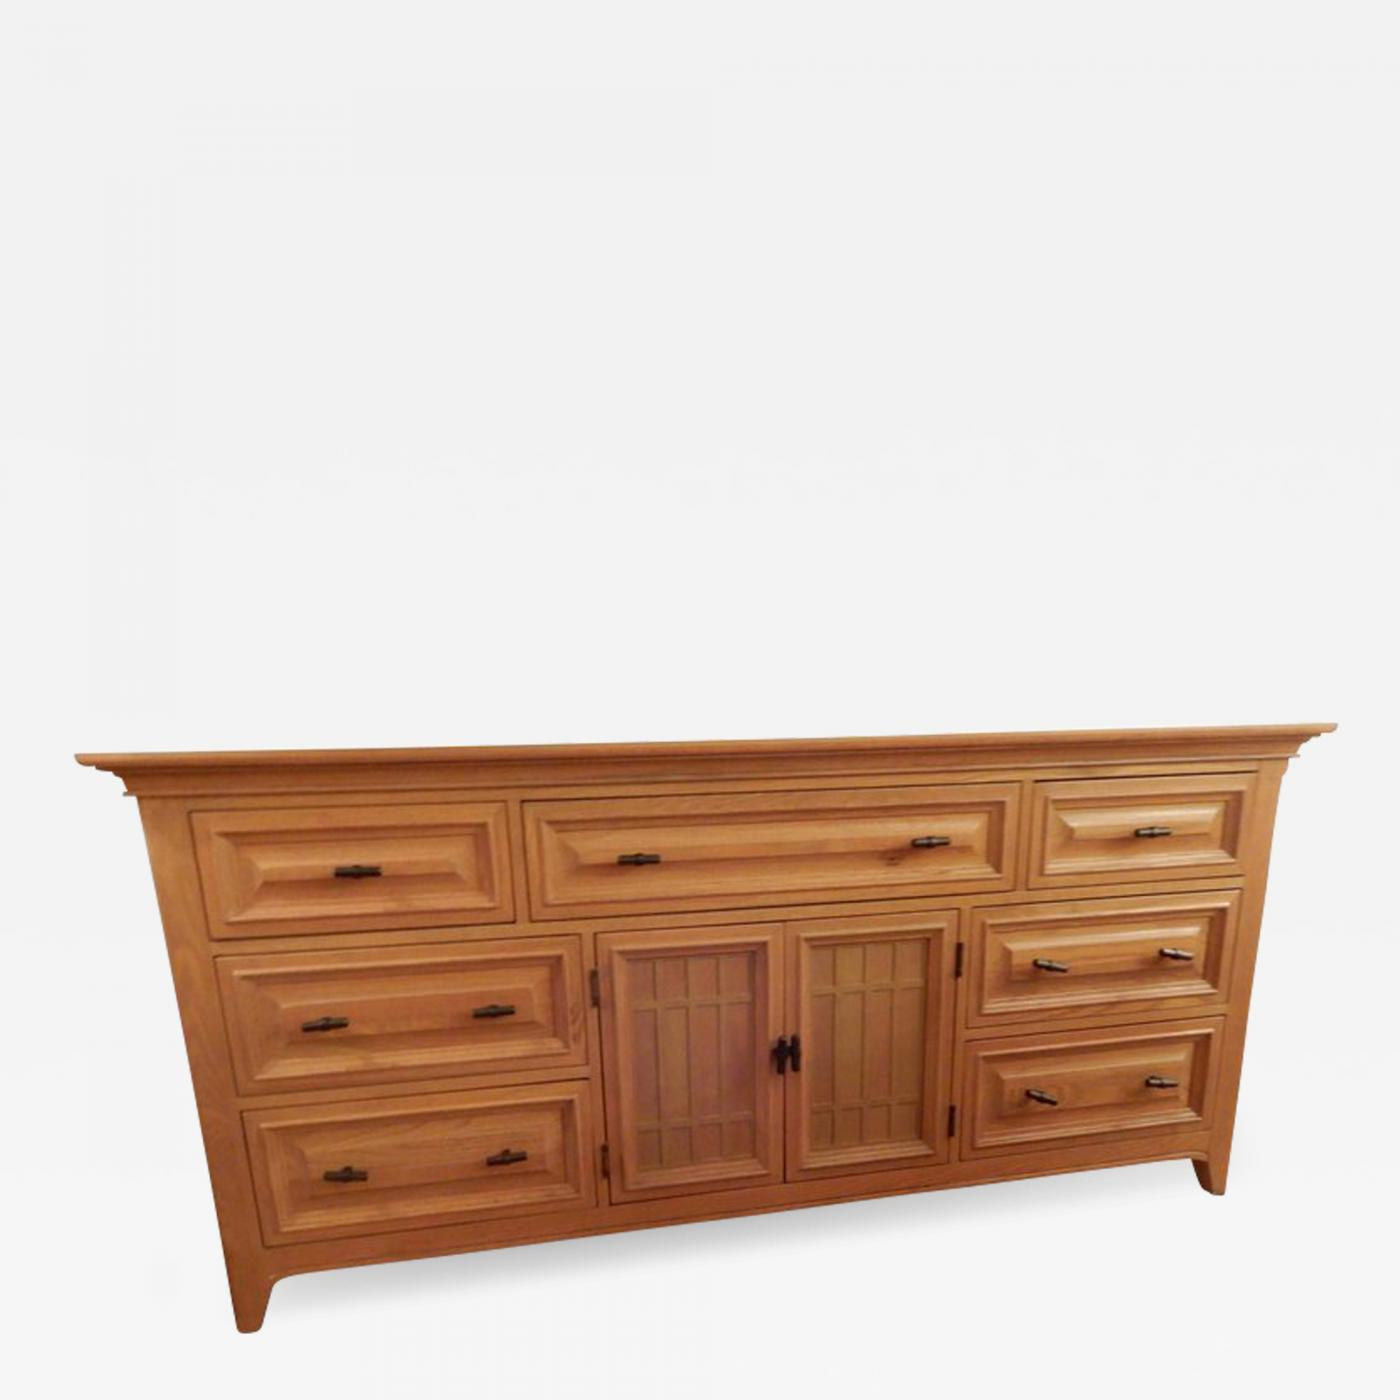 Mid Century White Oak Sideboard Buffet Credenza Server Intended For Mid Century White Buffets (View 23 of 30)